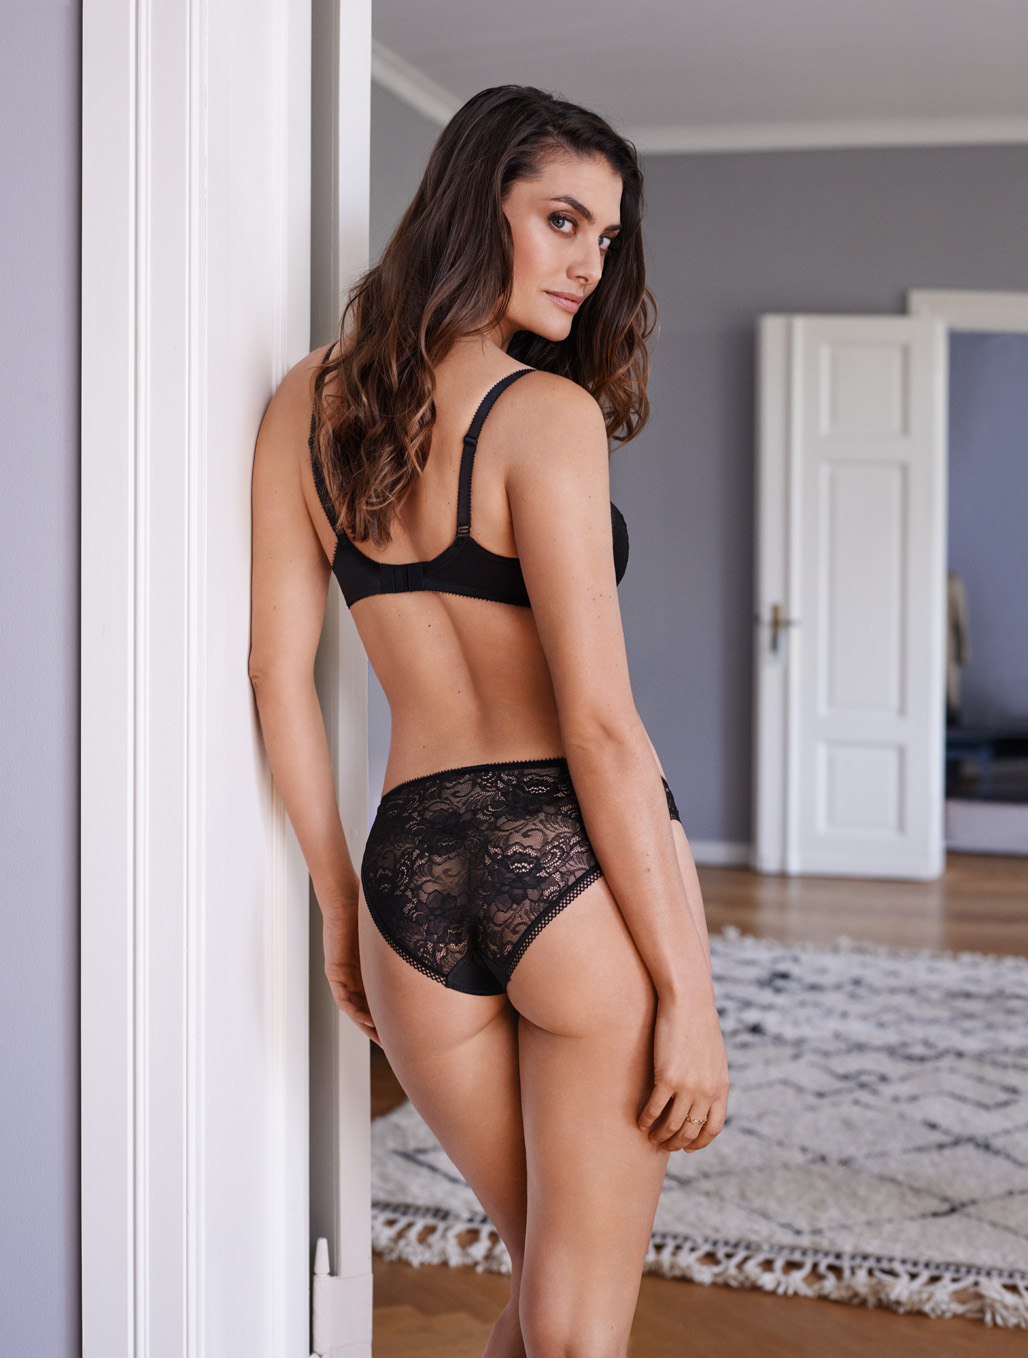 Hourglass Figures Lingerie To Wear And Avoid Dessus Dessous Mag